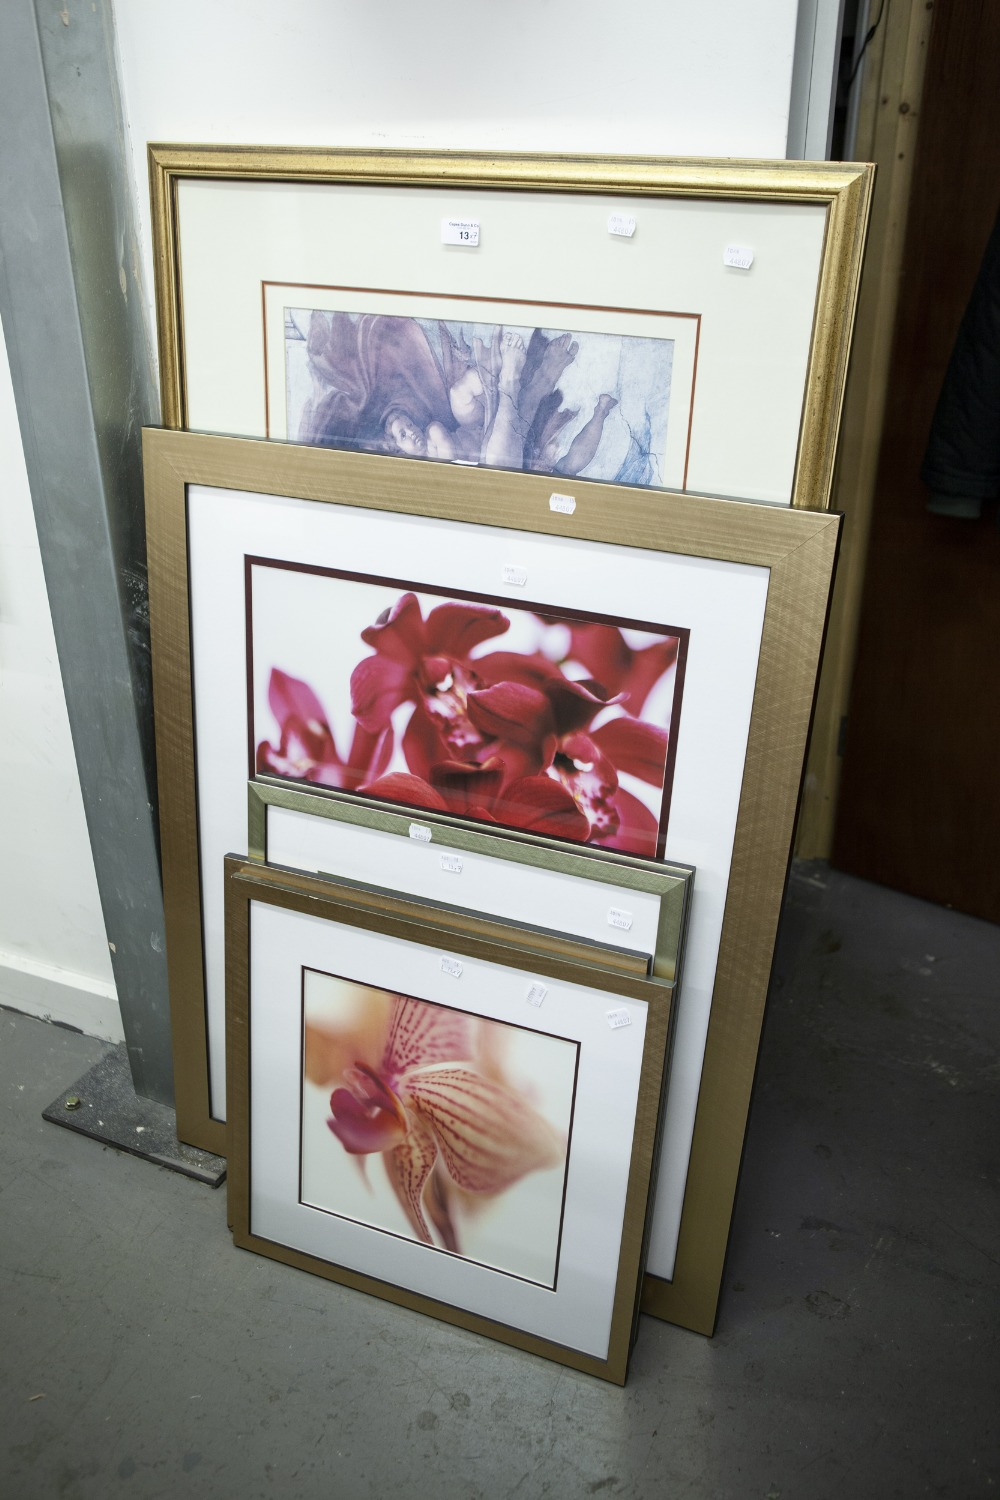 Lot 13 - LARGE FRAMED PRINT 'MICHAEL ANGELO' AND SIX MODERN FRAMED PRINTS OF FLOWERS (7)